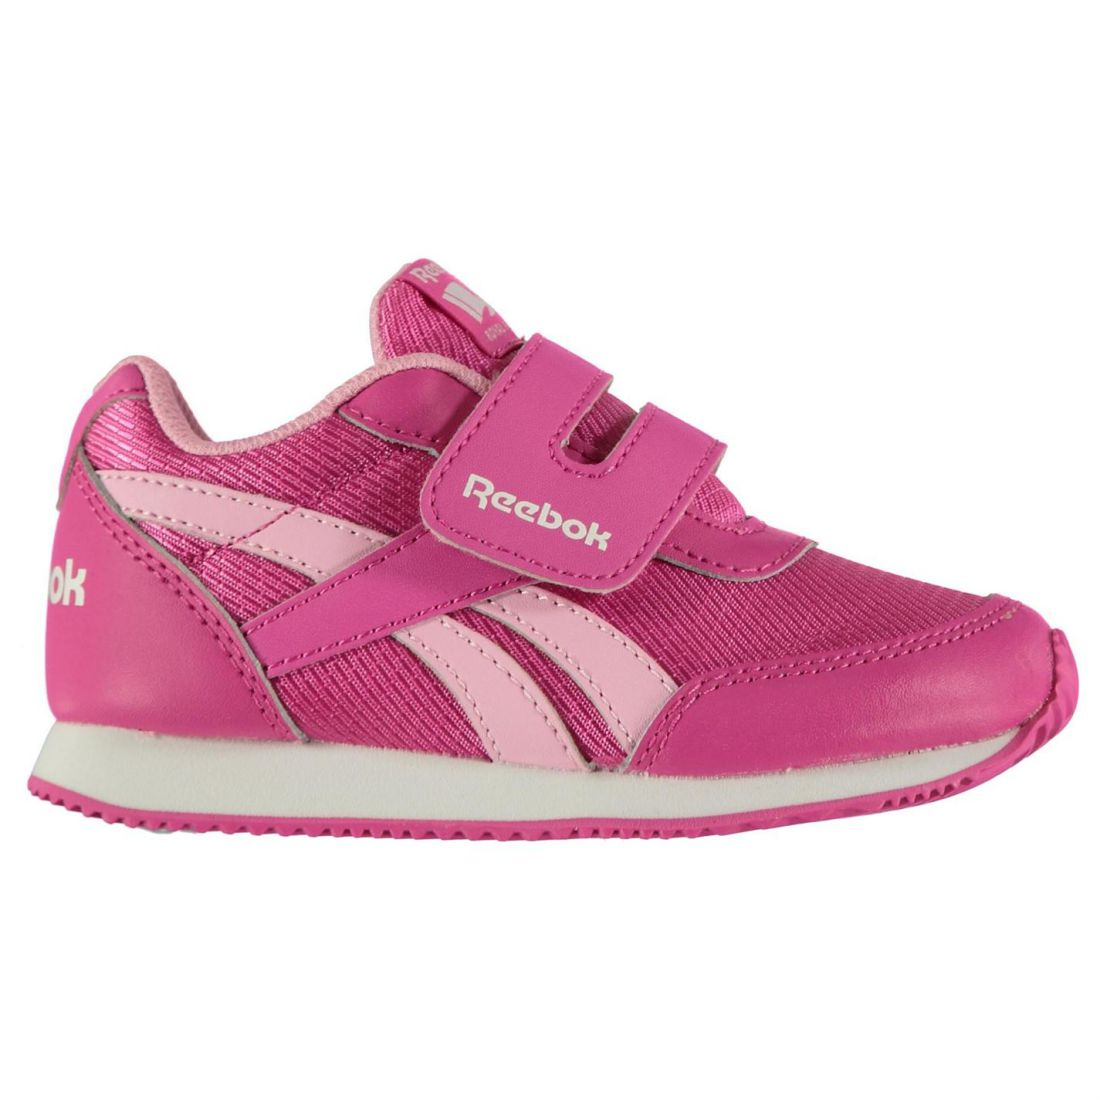 3a50289daf88 Details about Reebok Girls Classic Jogger RS Baby Trainers Shoes Footwear  Padded Ankle Collar